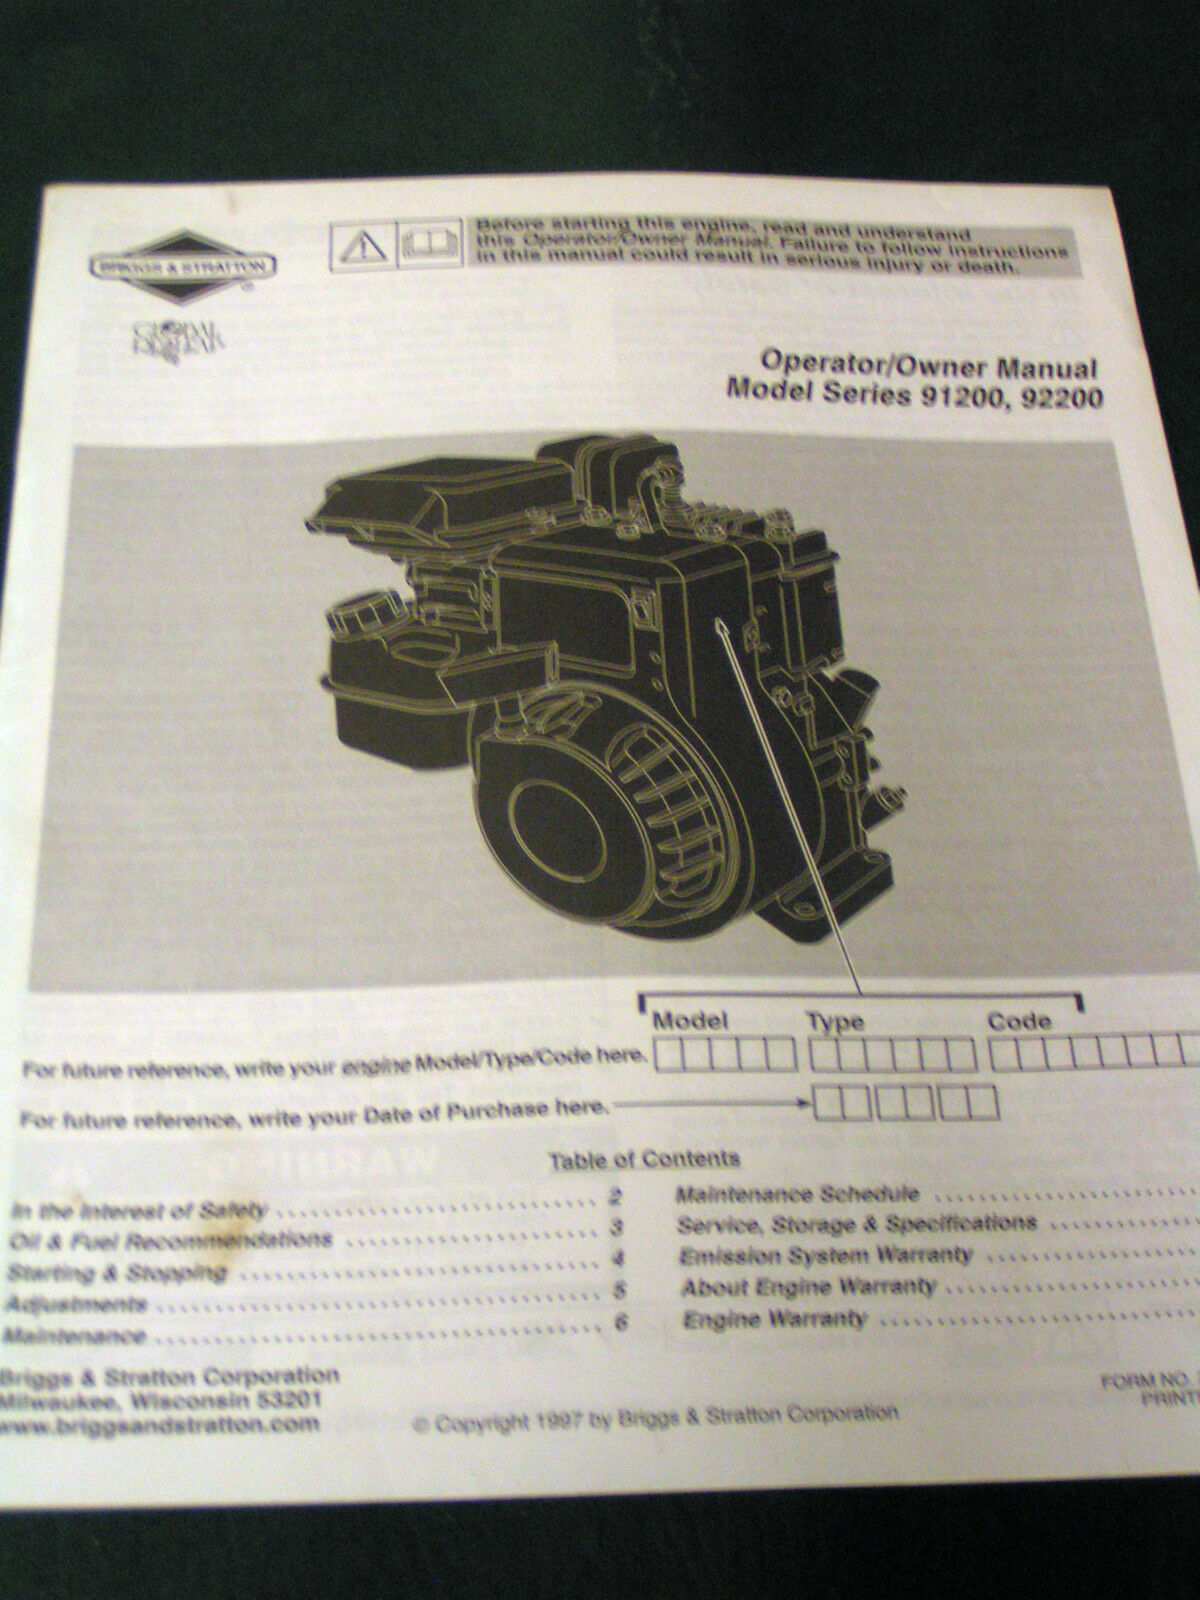 Briggs & Stratton Small Engine Operator's Manual-Model#91200 / 92200 1 of  1Only 1 available See More